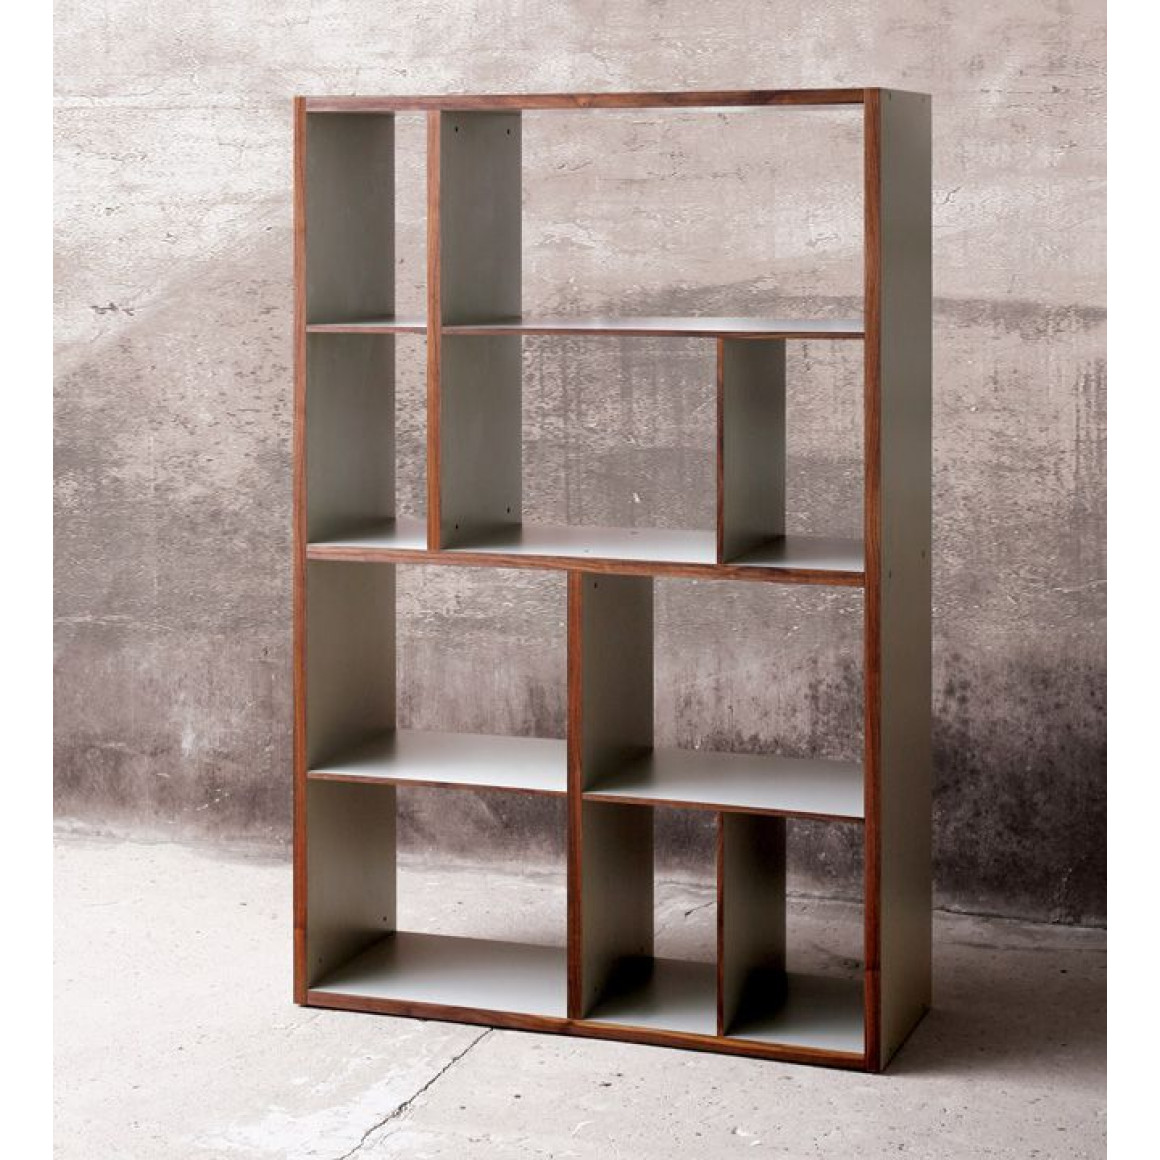 Contemporary solid wood shelf- Large